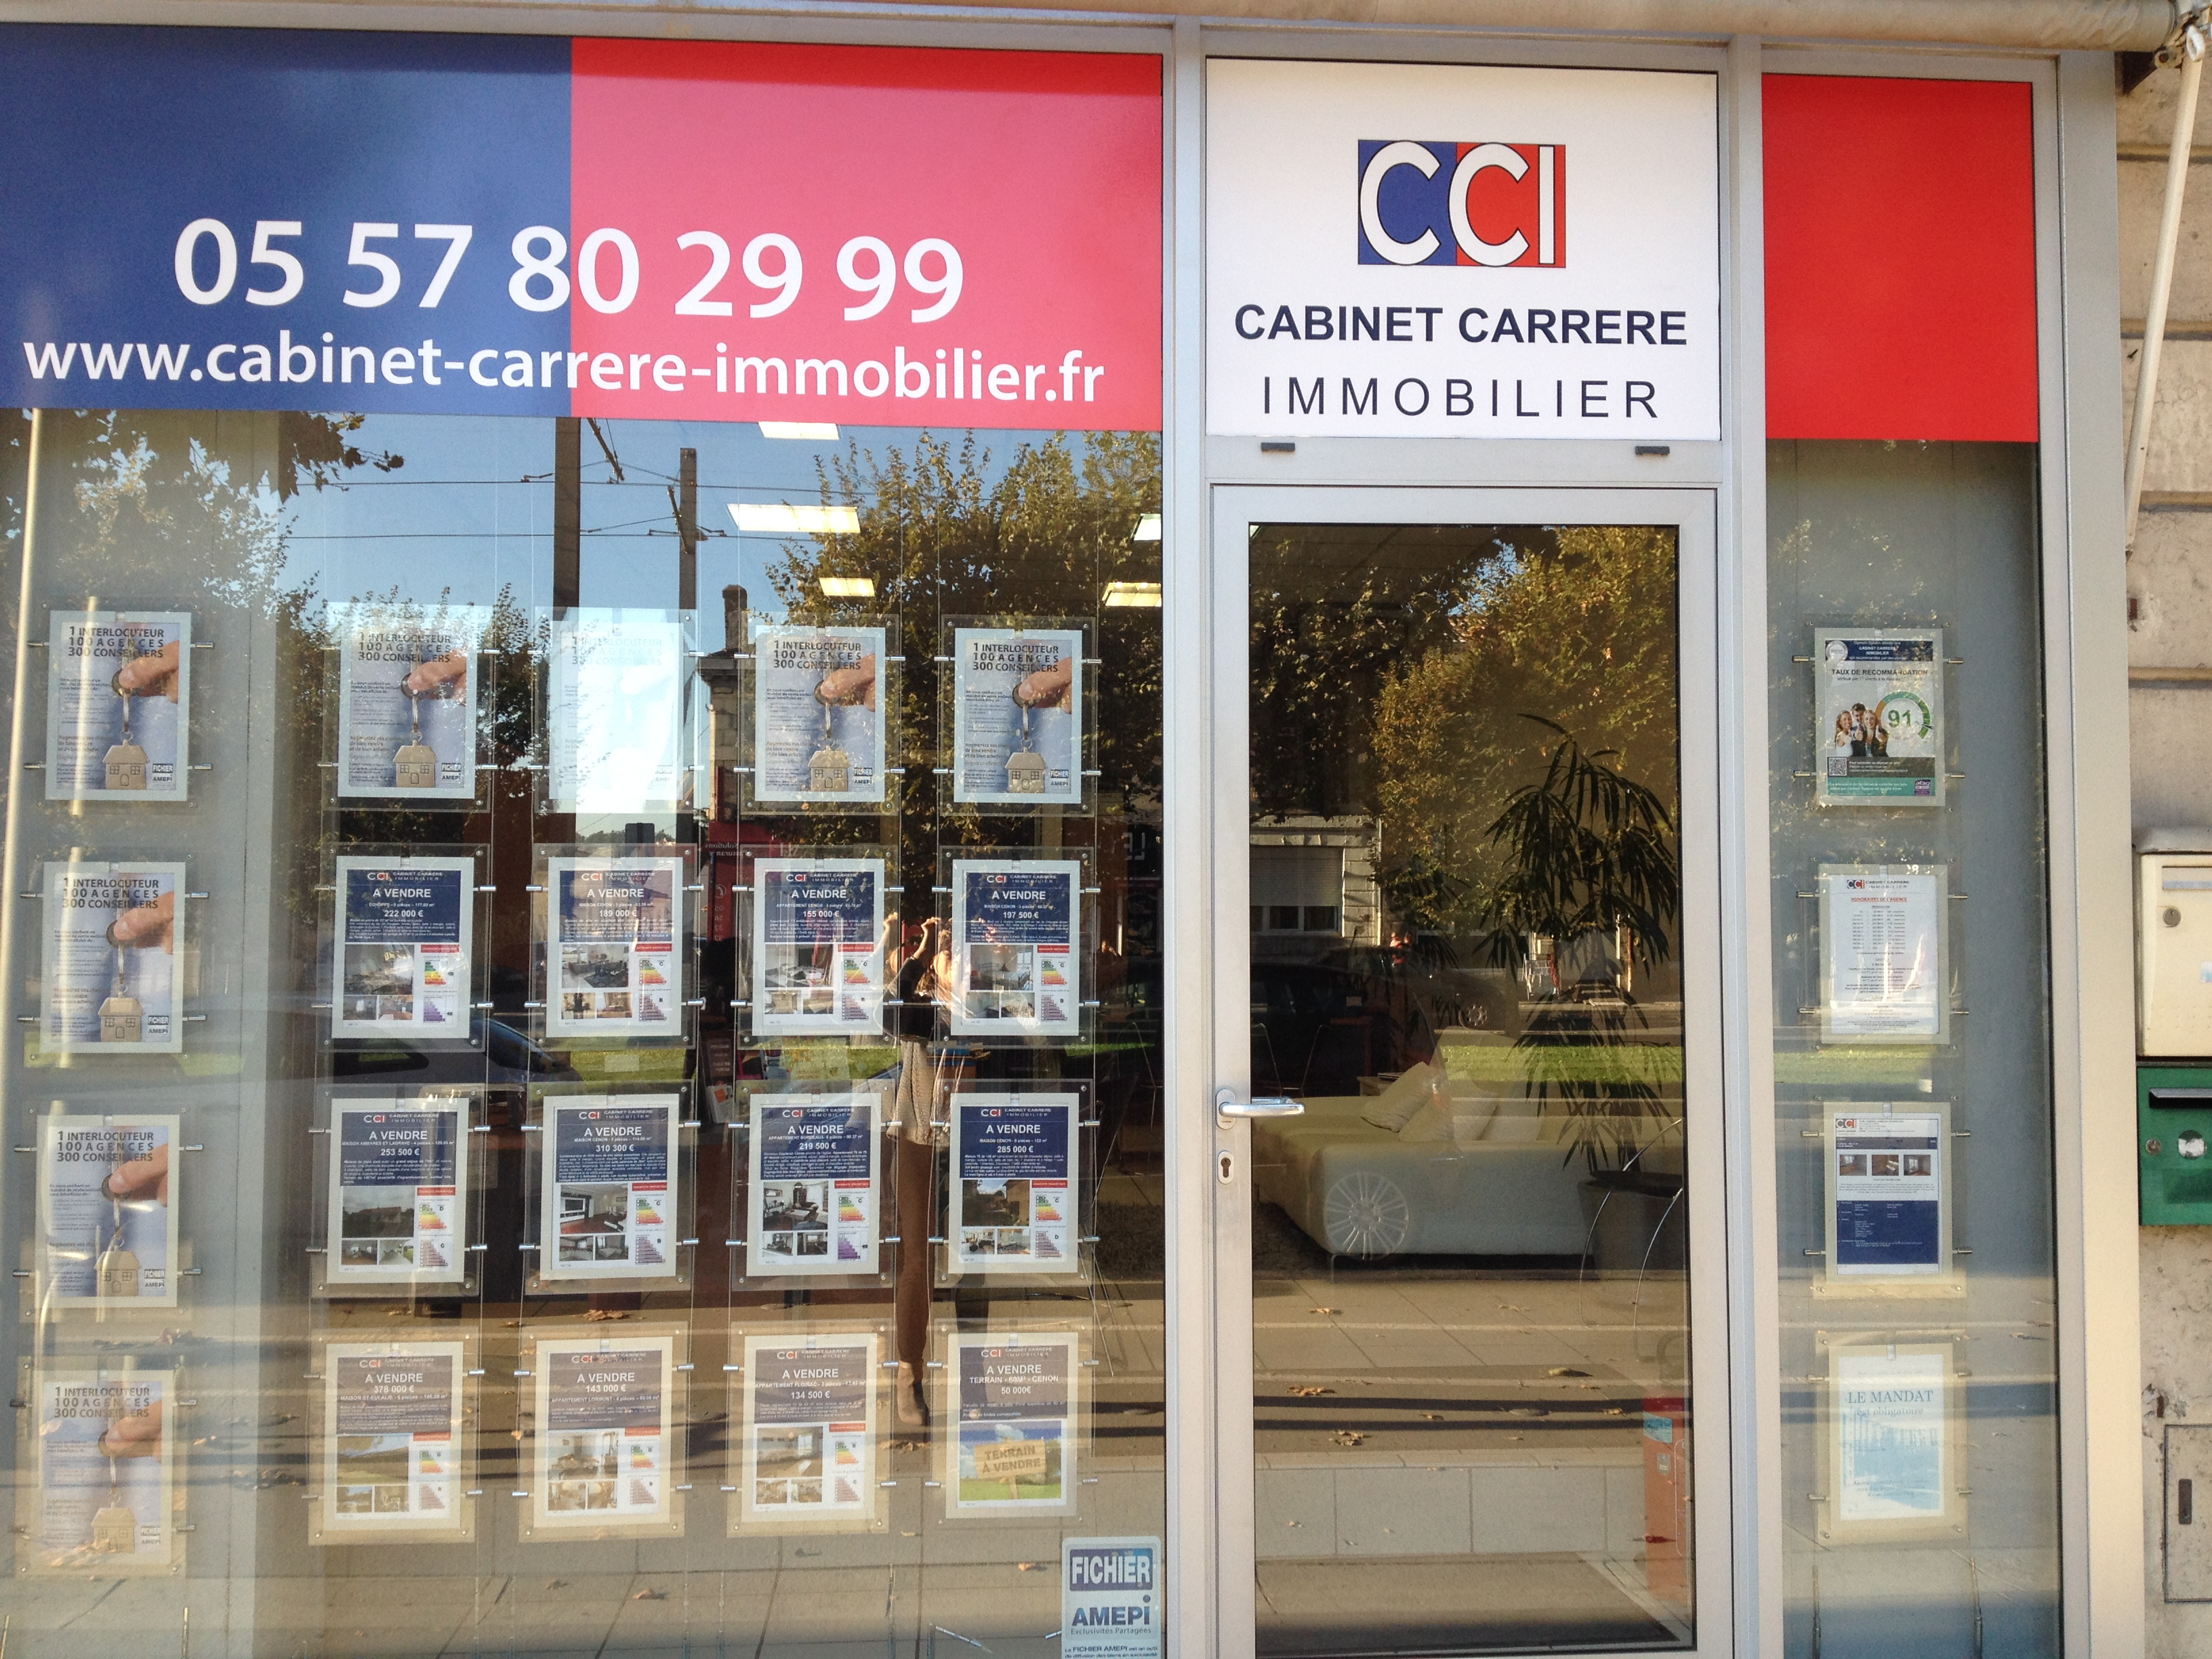 CABINET CARRERE IMMOBILIER